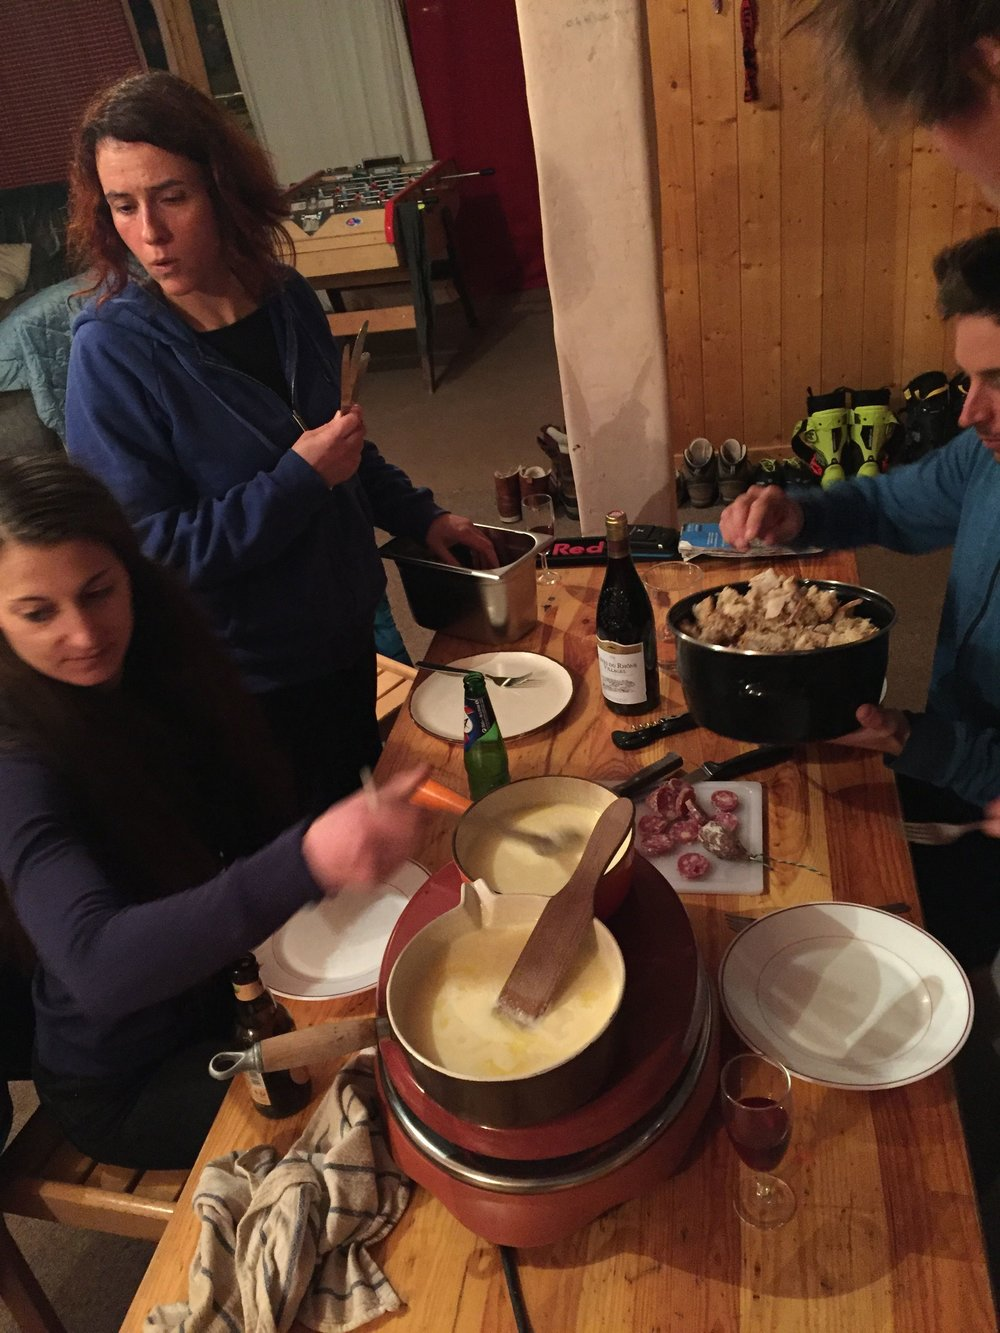 When in France... you must enjoy an evening of Fondue with Chef GuiGui.